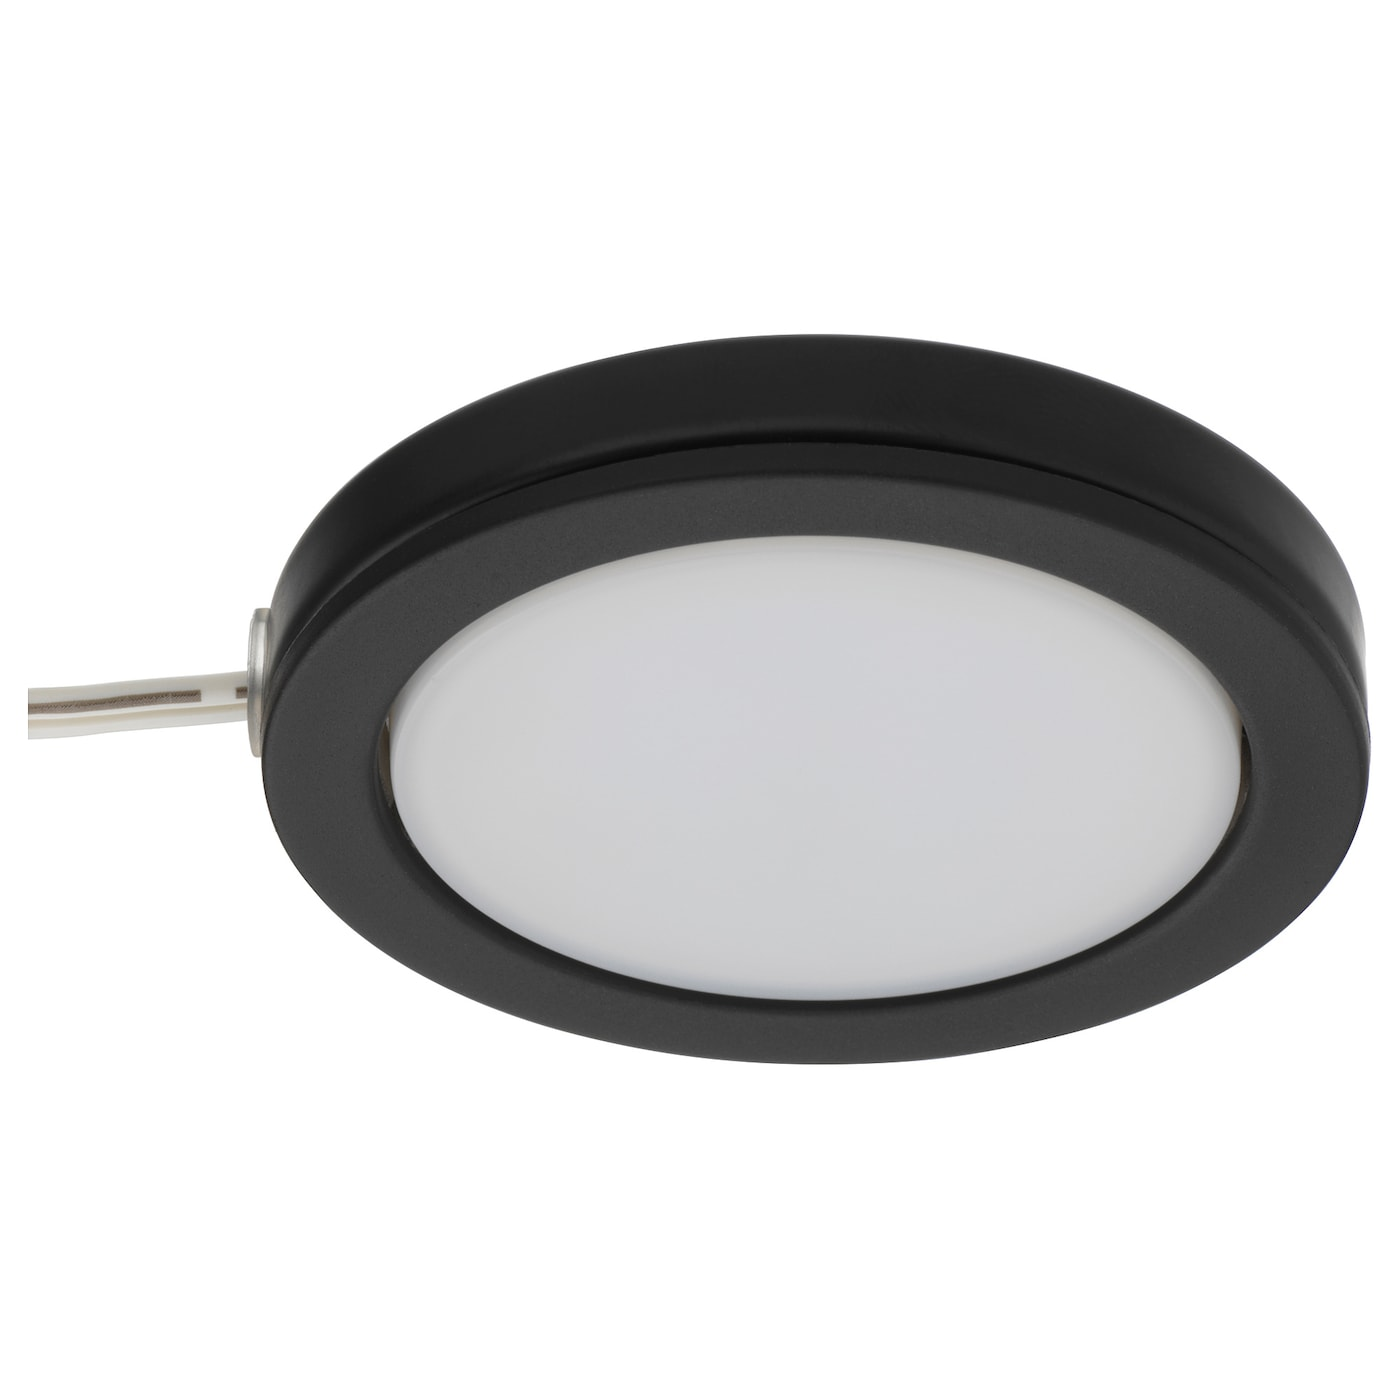 IKEA OMLOPP LED spotlight Adds a decorative finish to your kitchen.